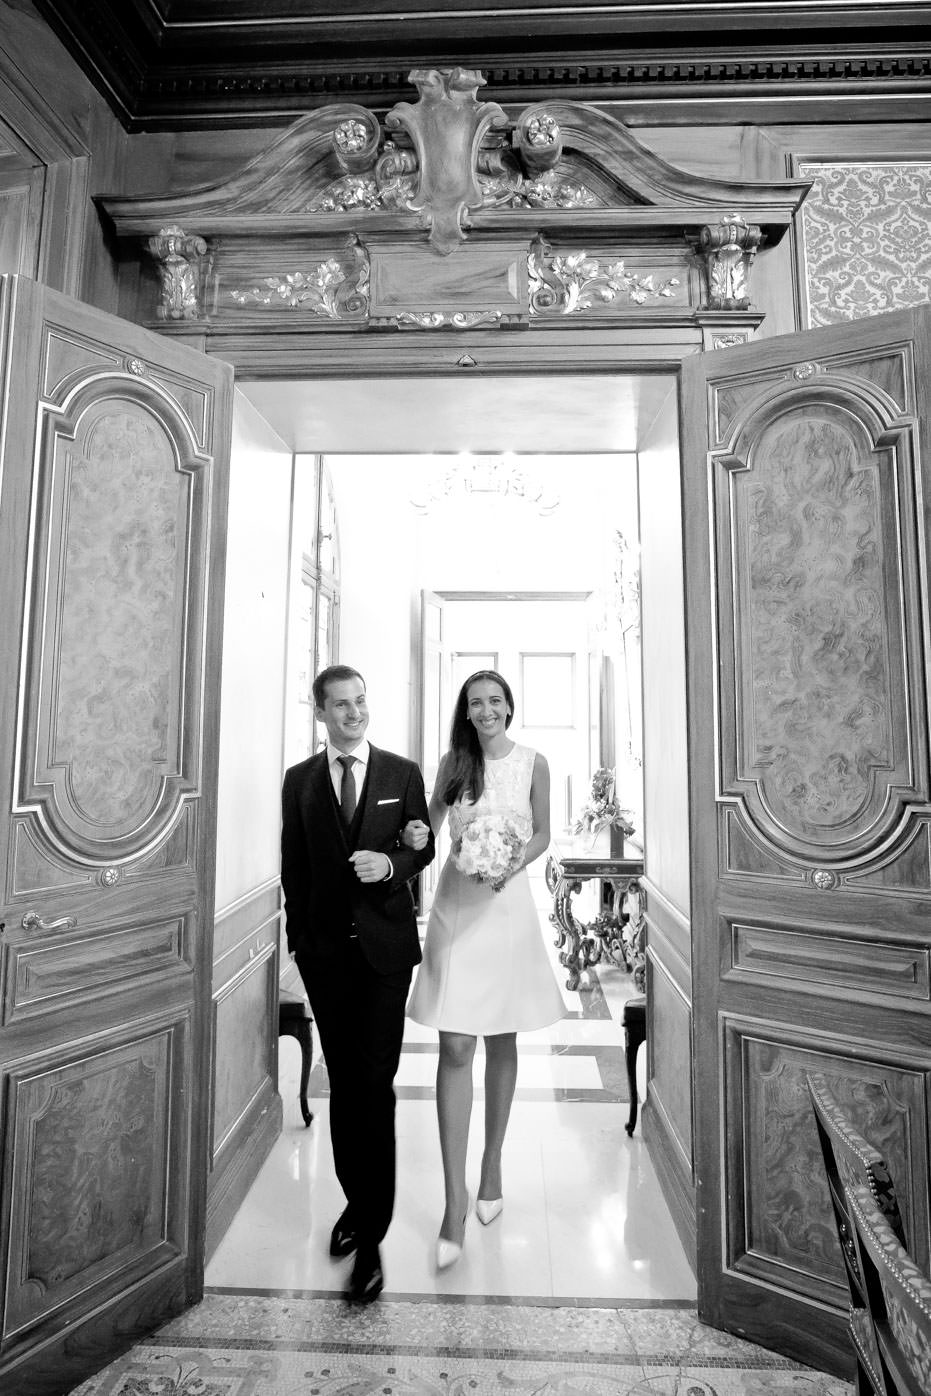 Photographe_Monaco_Monte_Carlo_Mariage_Wedding_01